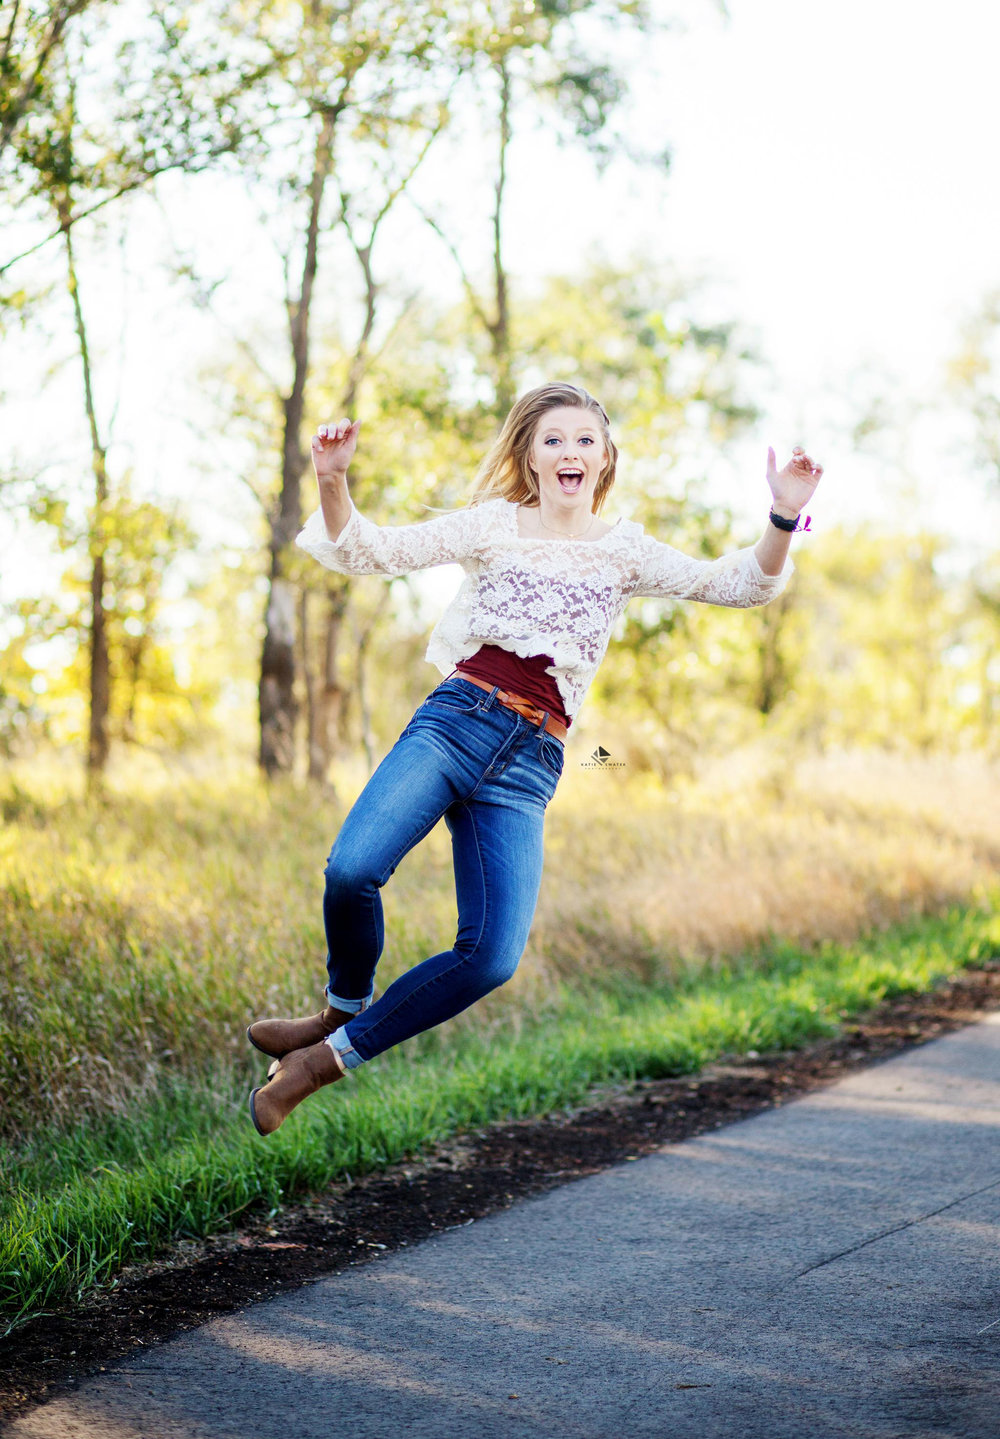 blonde senior girl in a white lace top and dark denim jeans jumping to click her heels midair on a walking path in the country